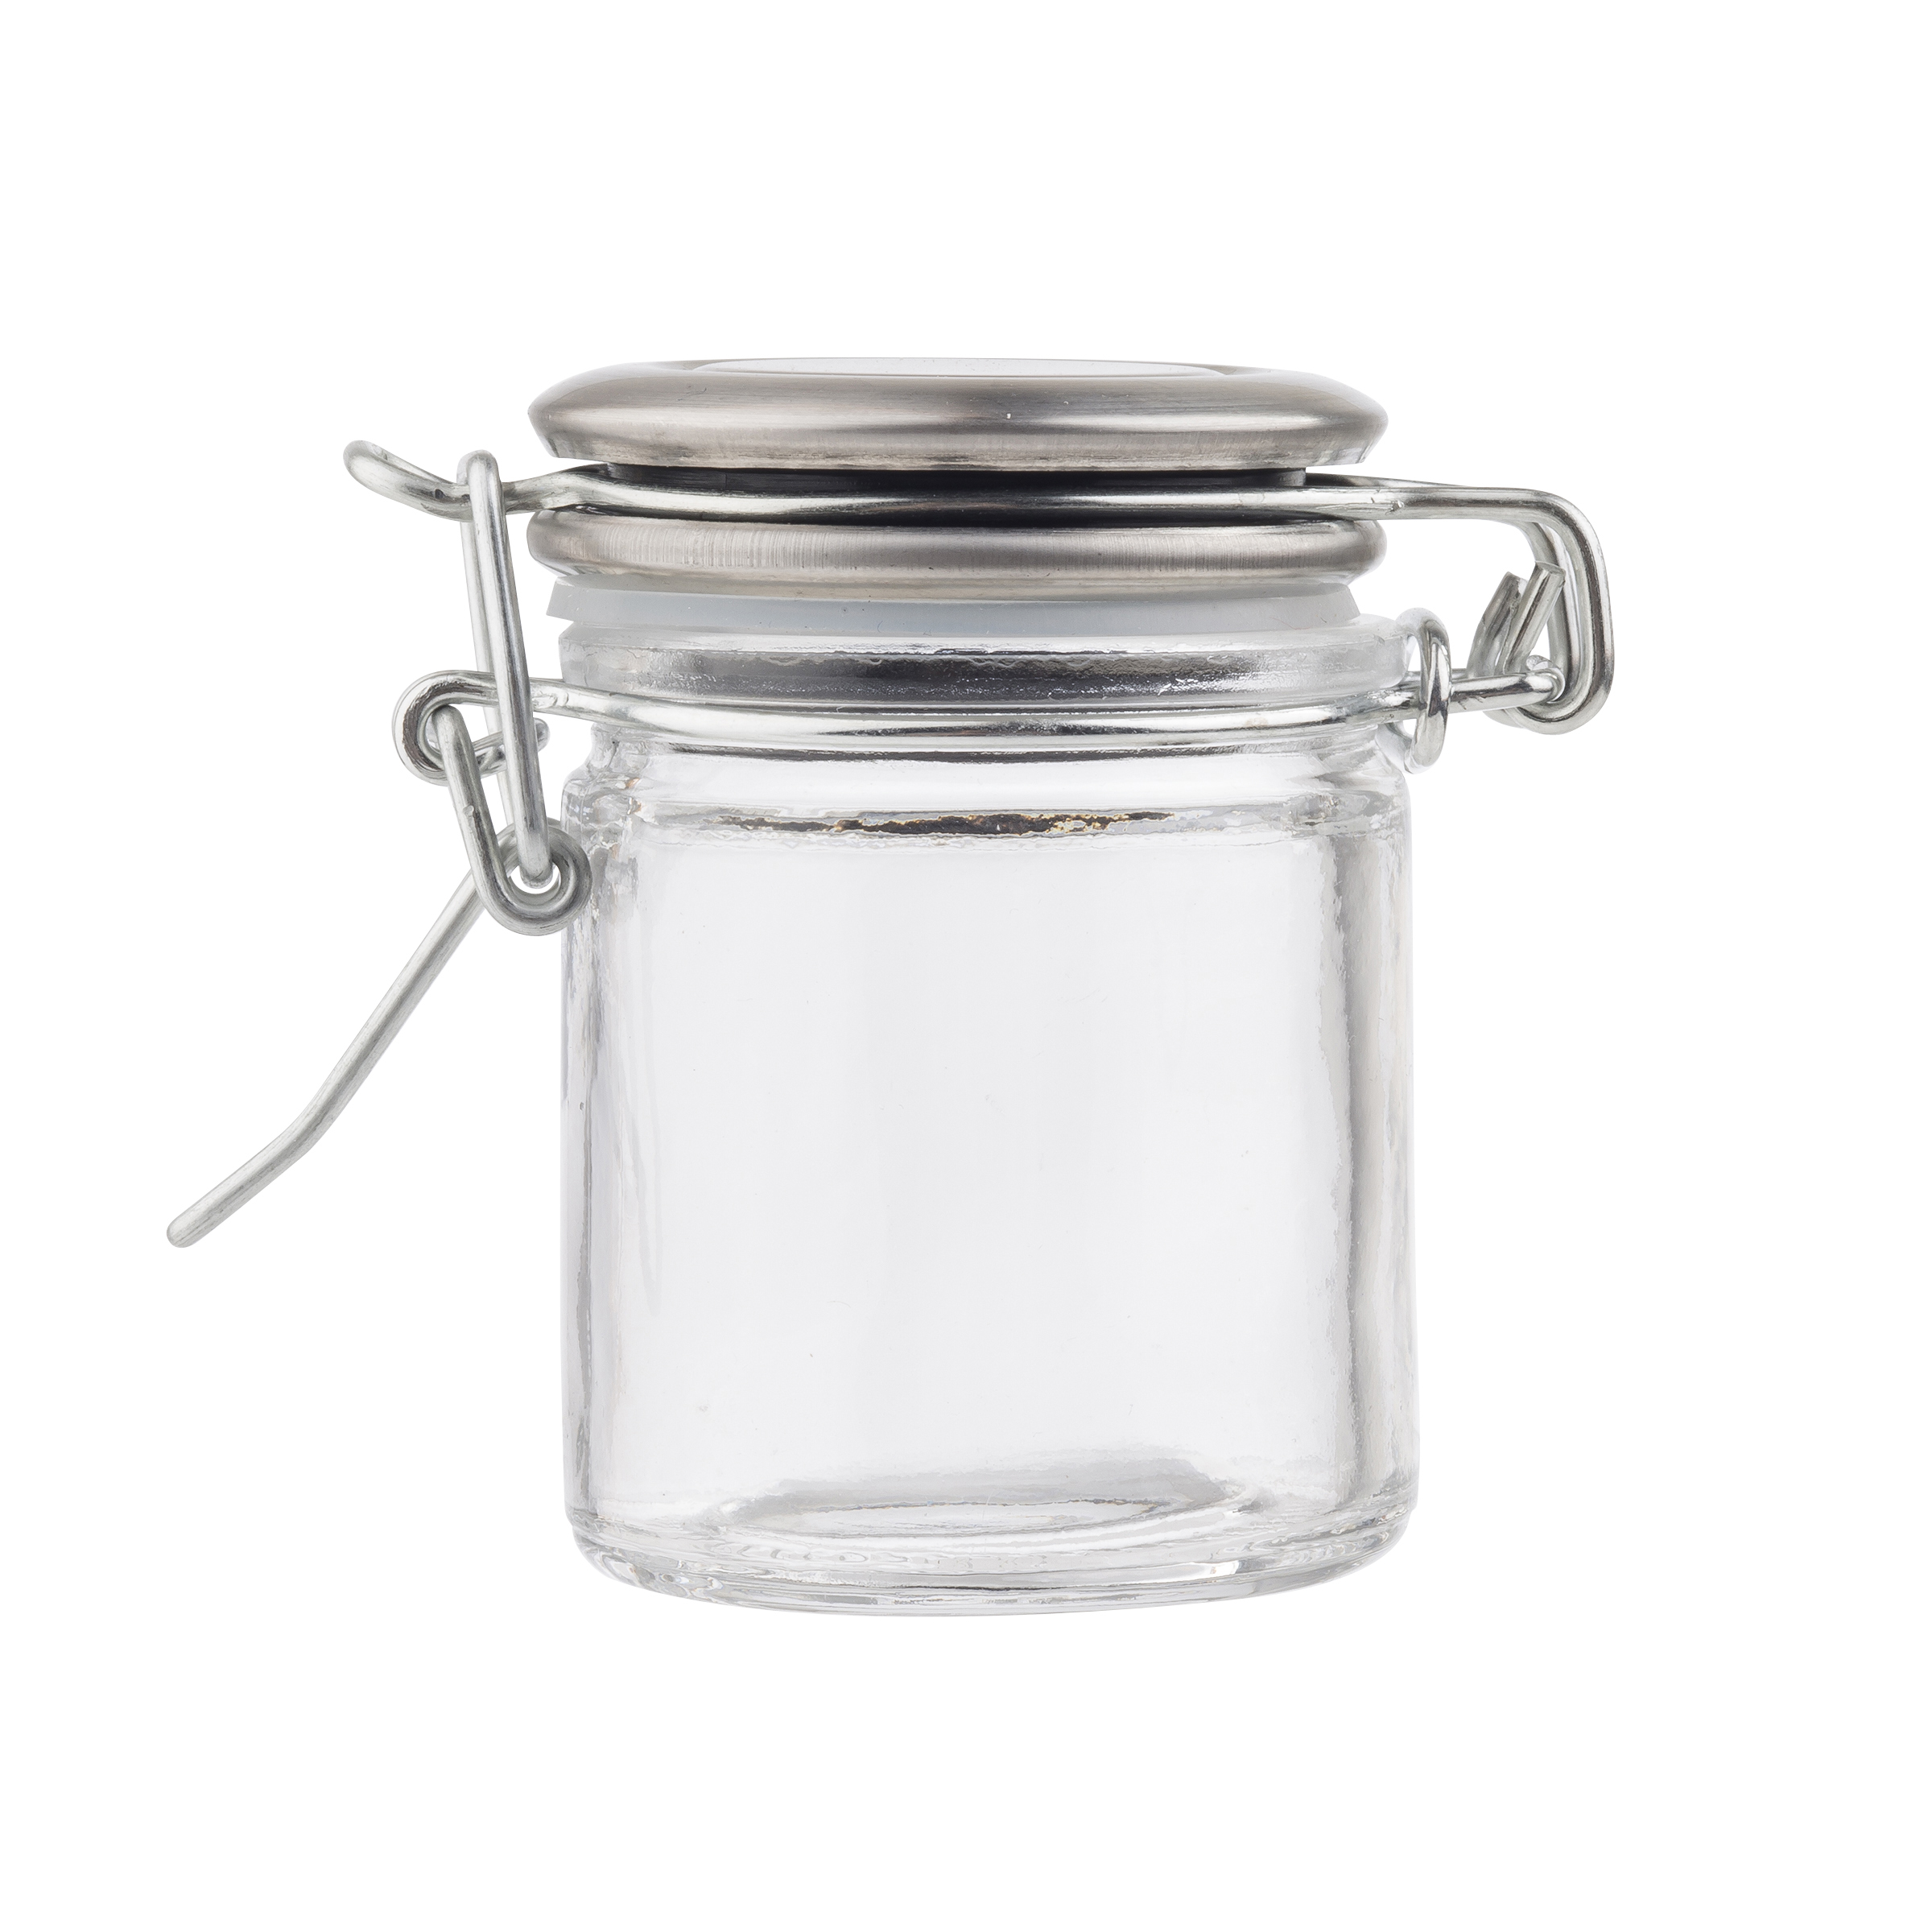 TableCraft Products 10105 salt / pepper shaker